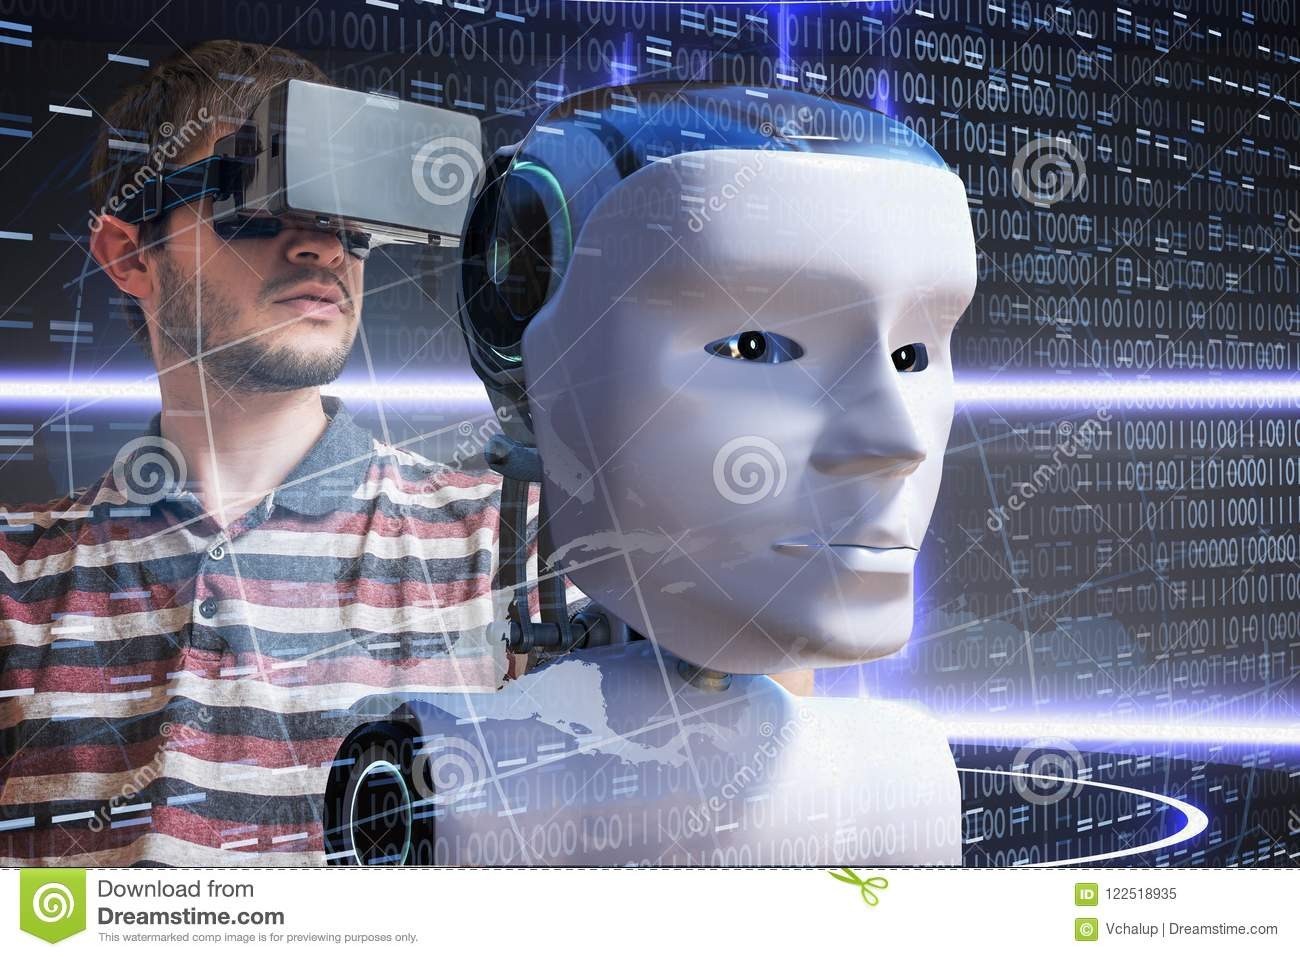 Young scientist is controlling robotic head. Artificial intelligence concept. 3D rendered illustration of a robot